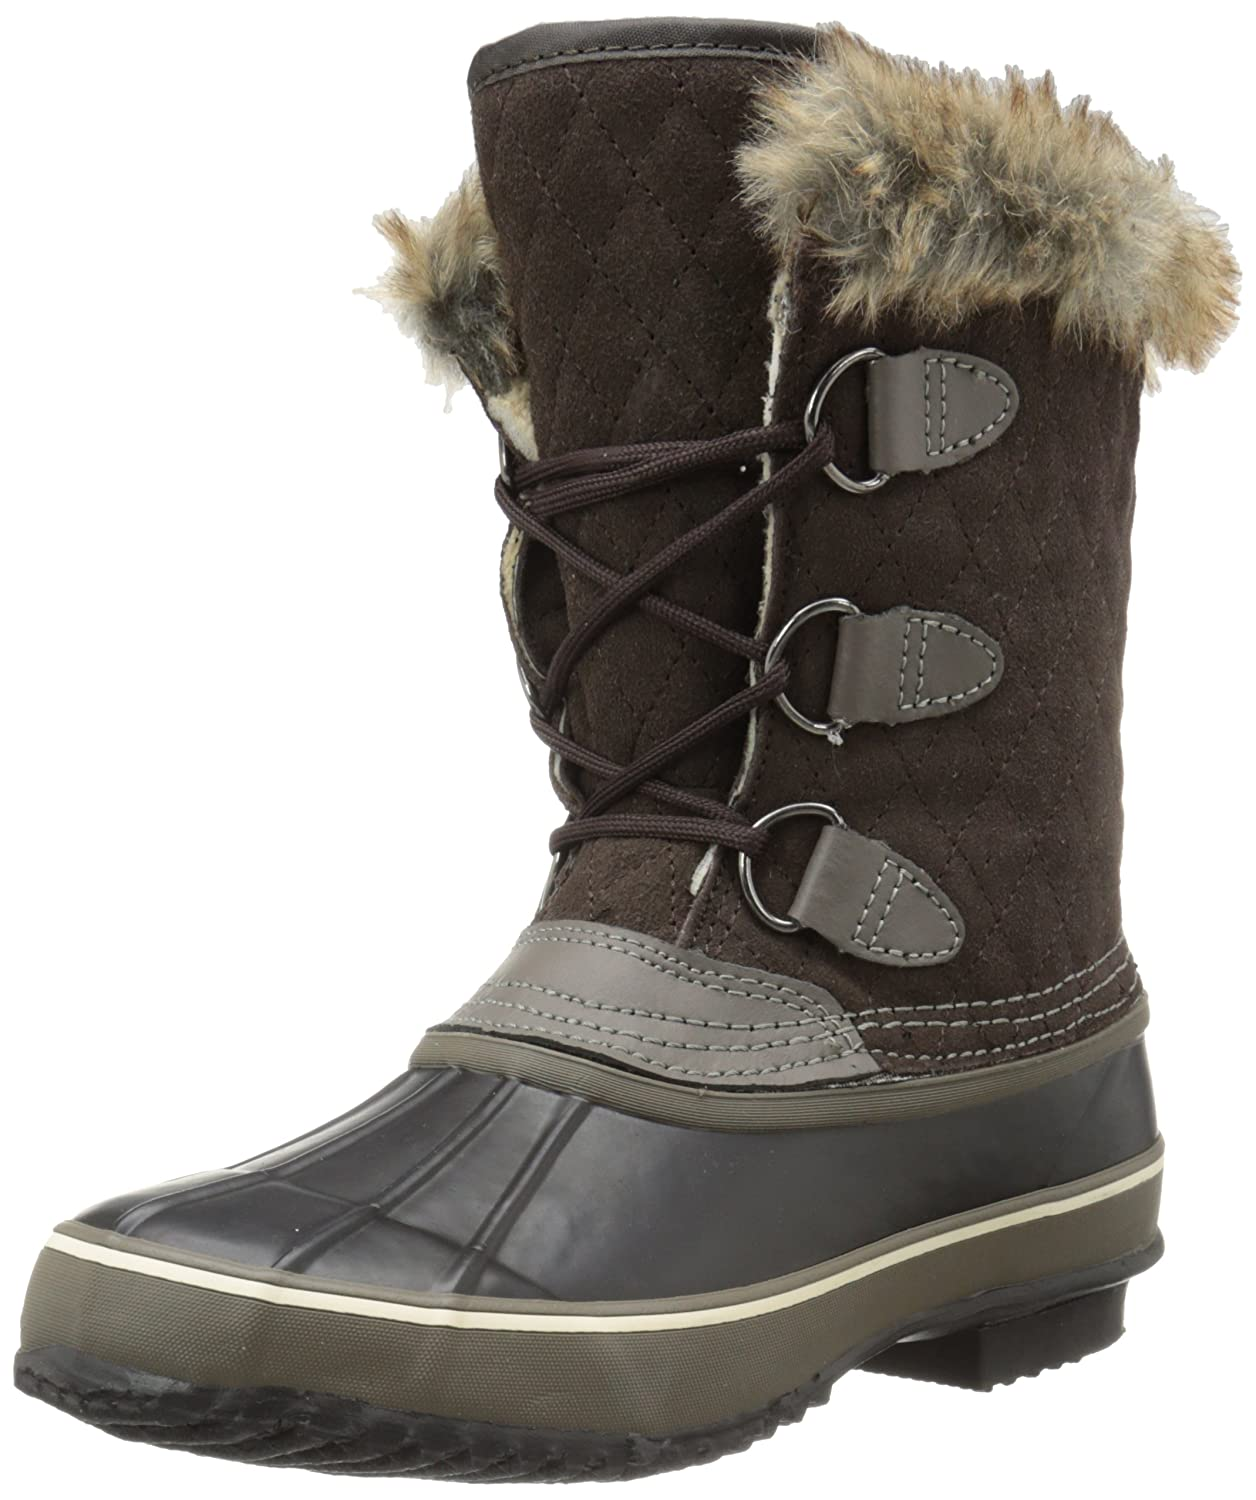 Northside Women's Mont Blanc Waterproof Snow Boot B00I5G487W 8 B(M) US|Dark Brown